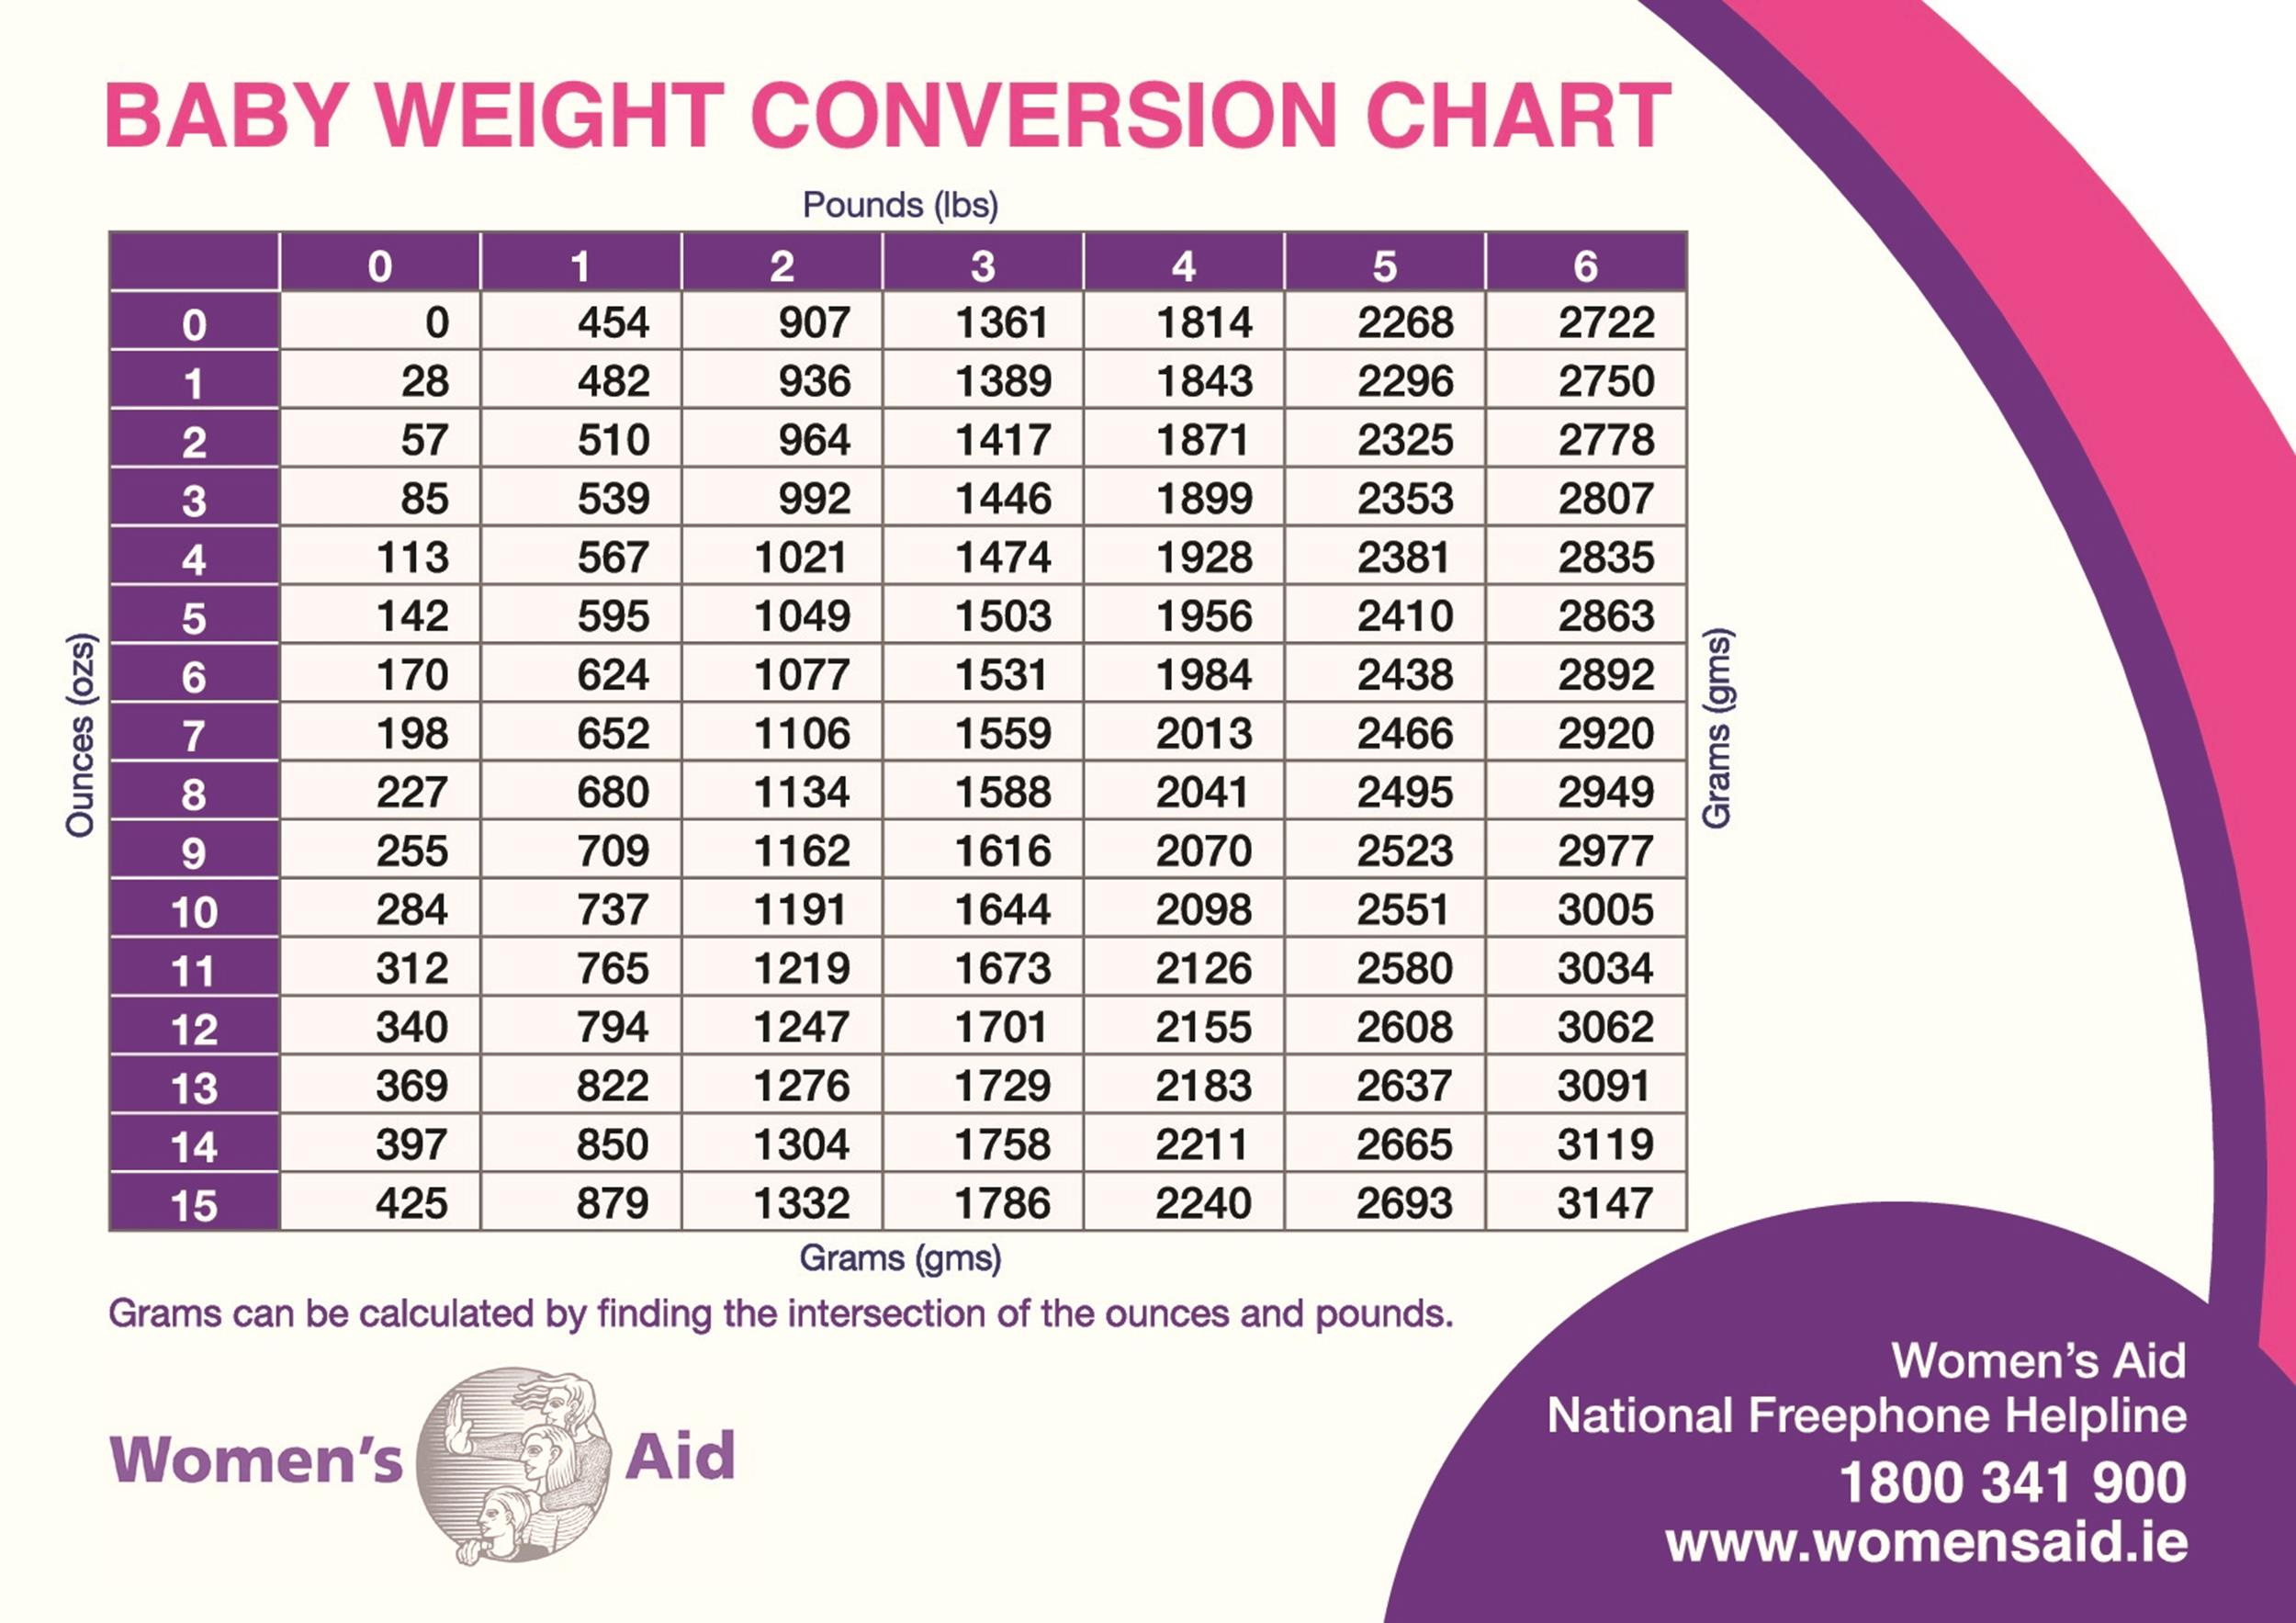 24 Baby Weight Charts ᐅ TemplateLab